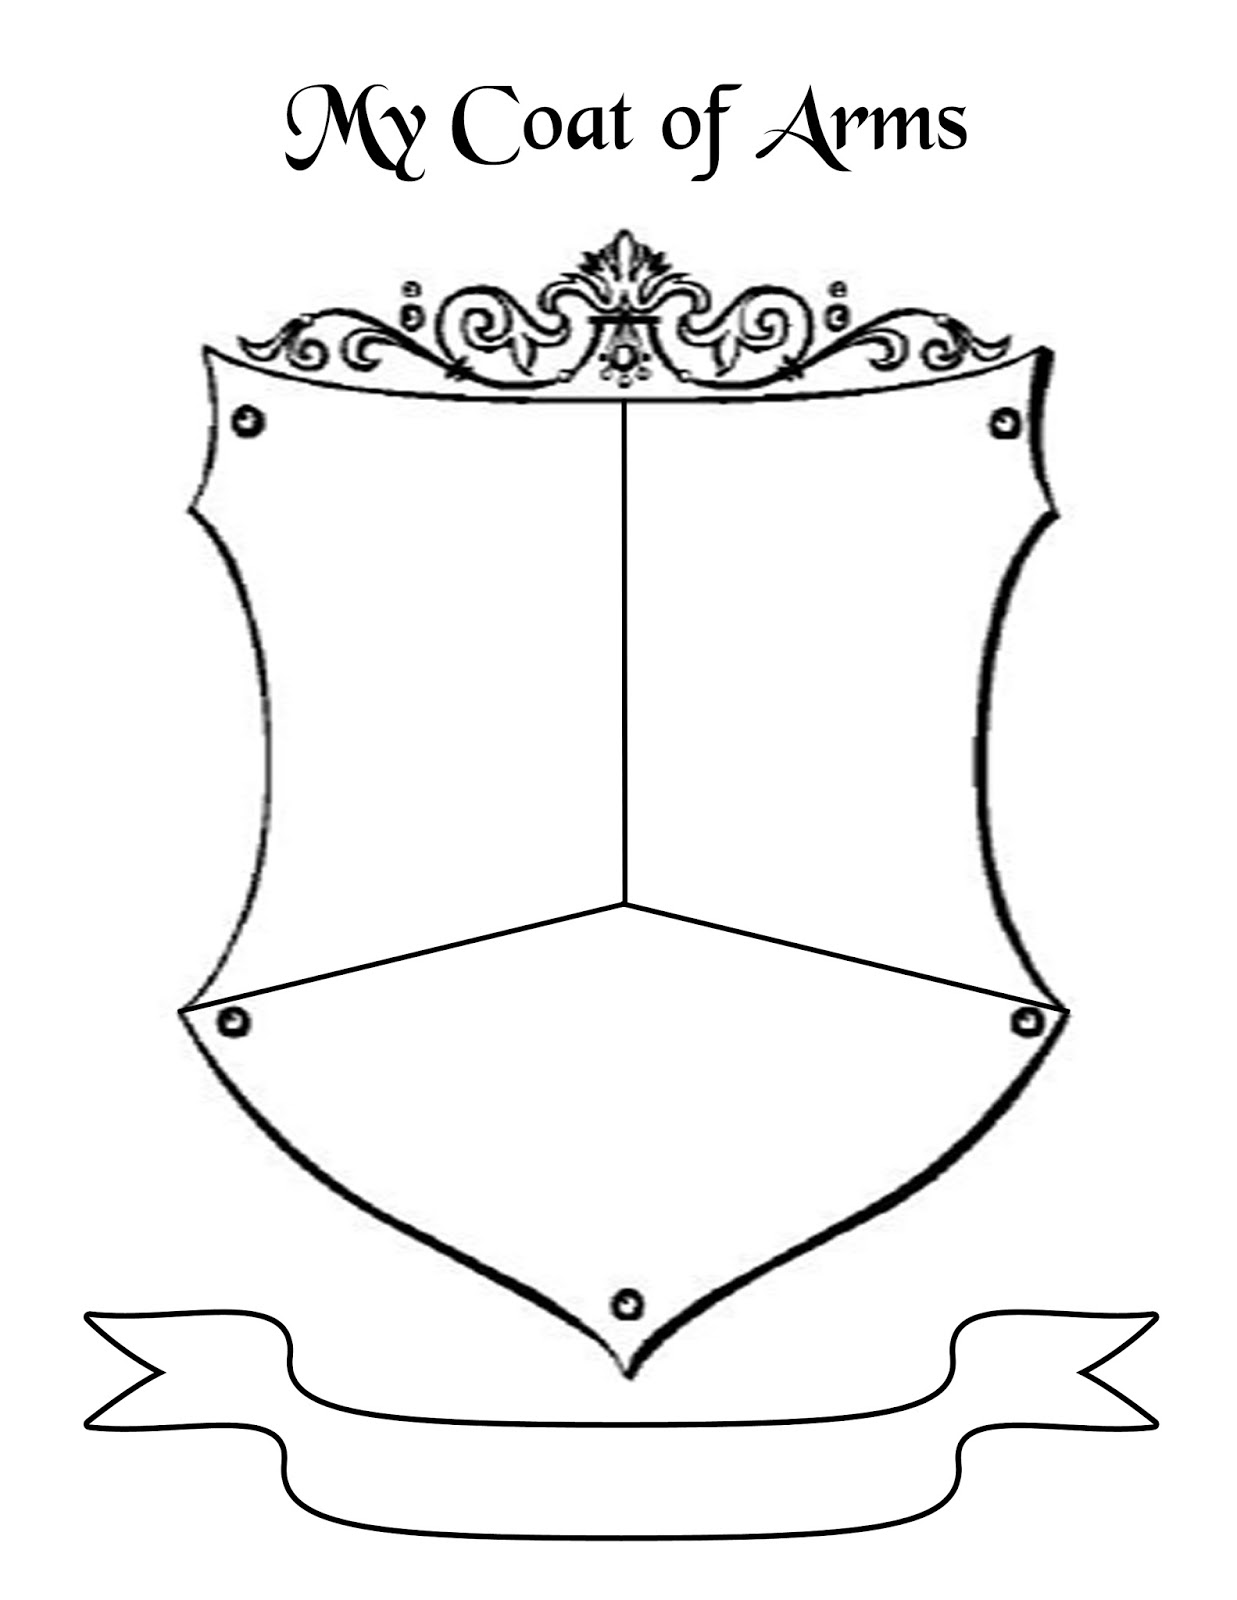 Worksheets Coat Of Arms Worksheet of coat arms worksheet sharebrowse collection sharebrowse